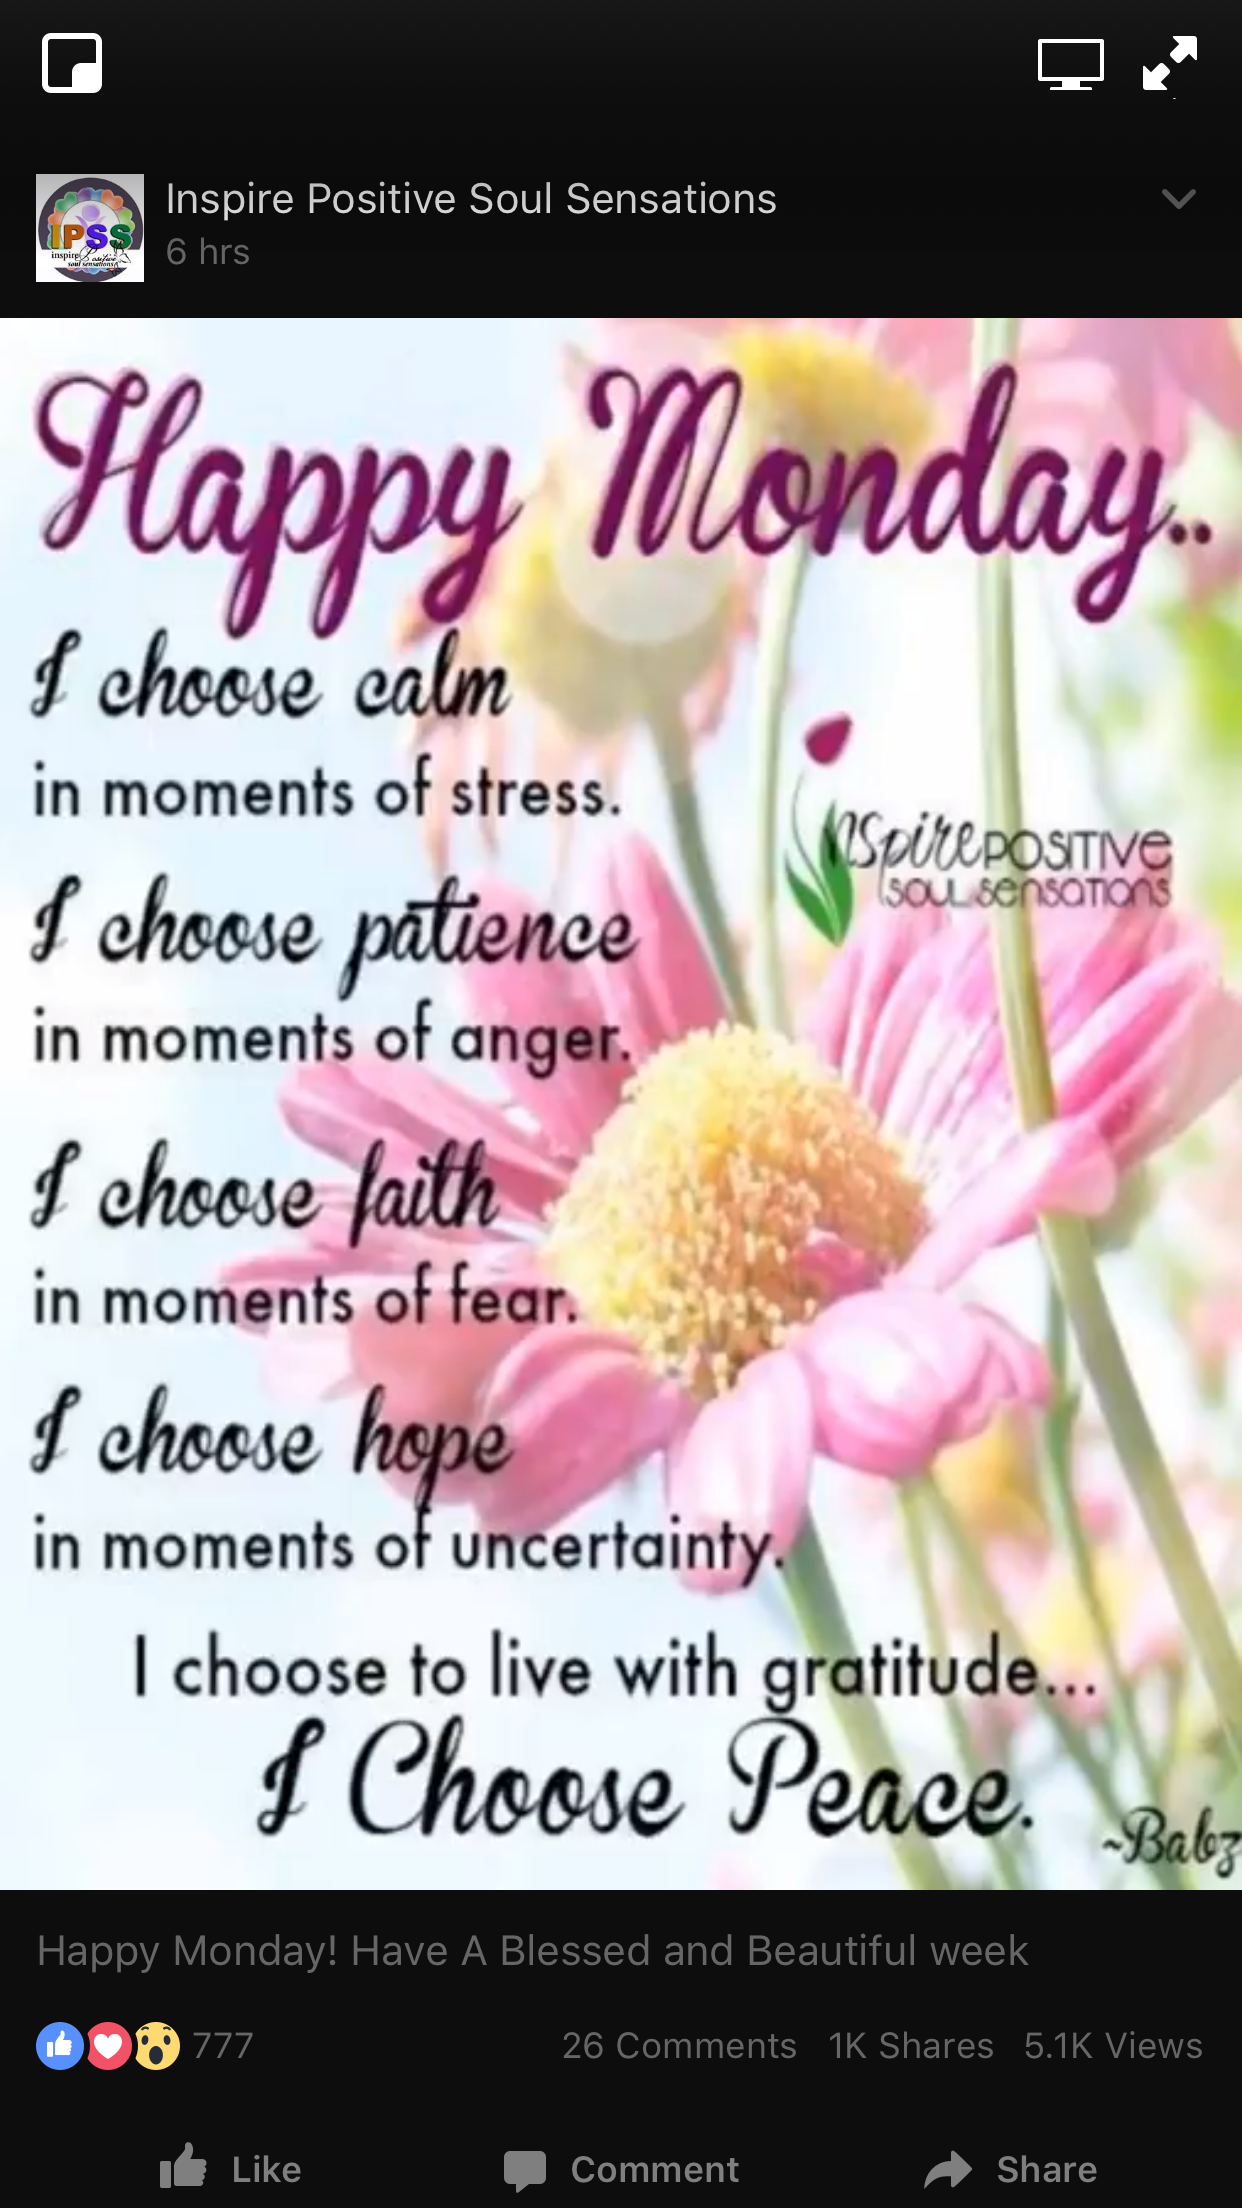 Pin by stephanie boatwright on inspire daily messages pinterest happy monday quotes happy monday images monday blessings morning blessings monday greetings life poems blessed quotes its monday mondays m4hsunfo